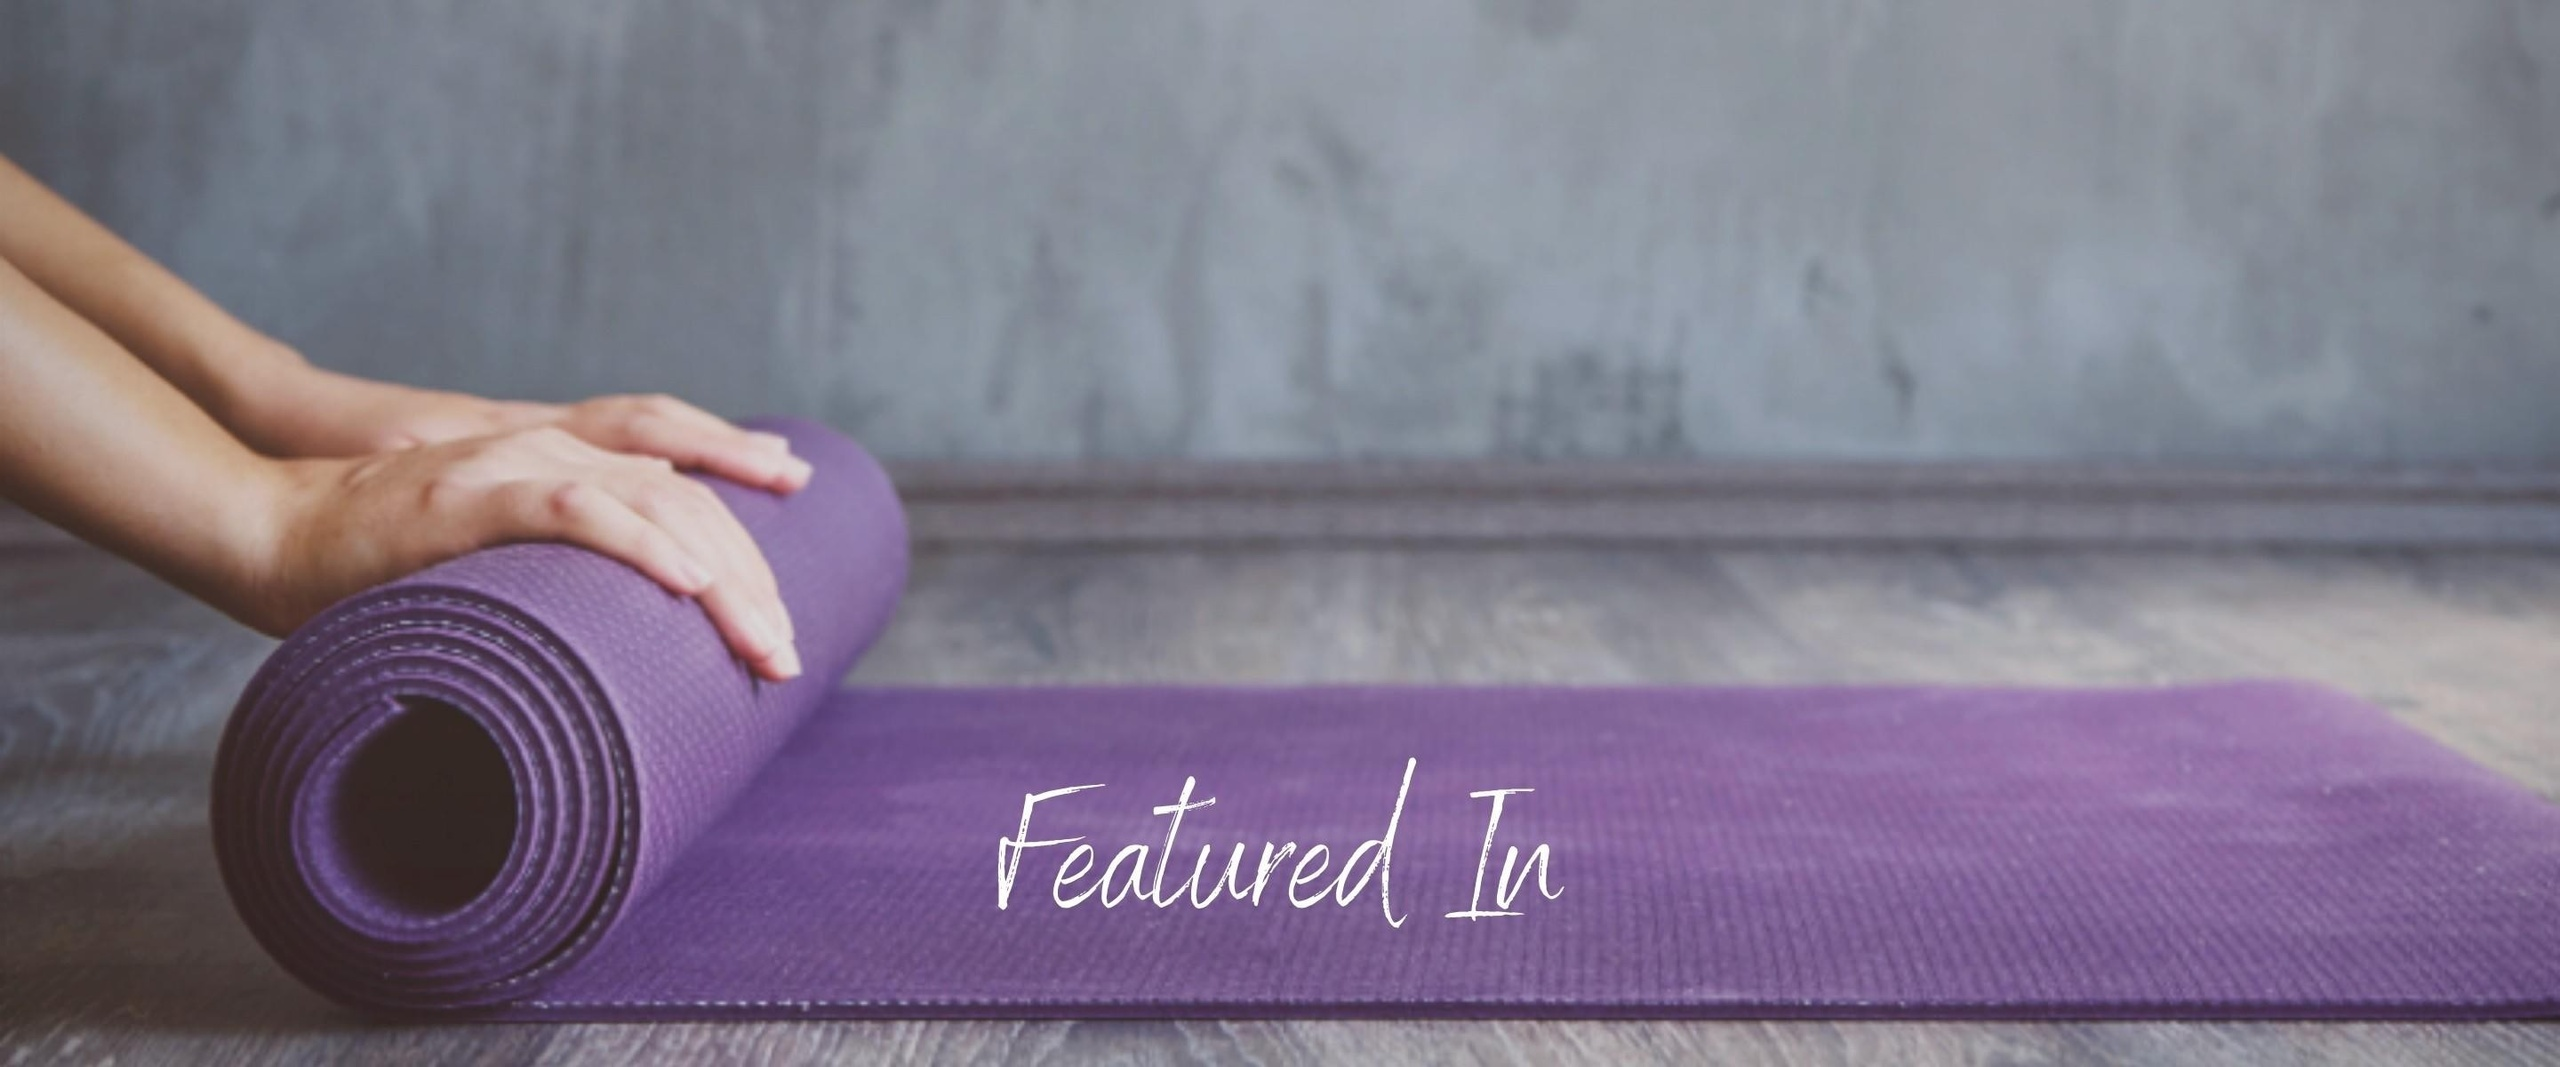 Yogamat Hands Rolling Featured In